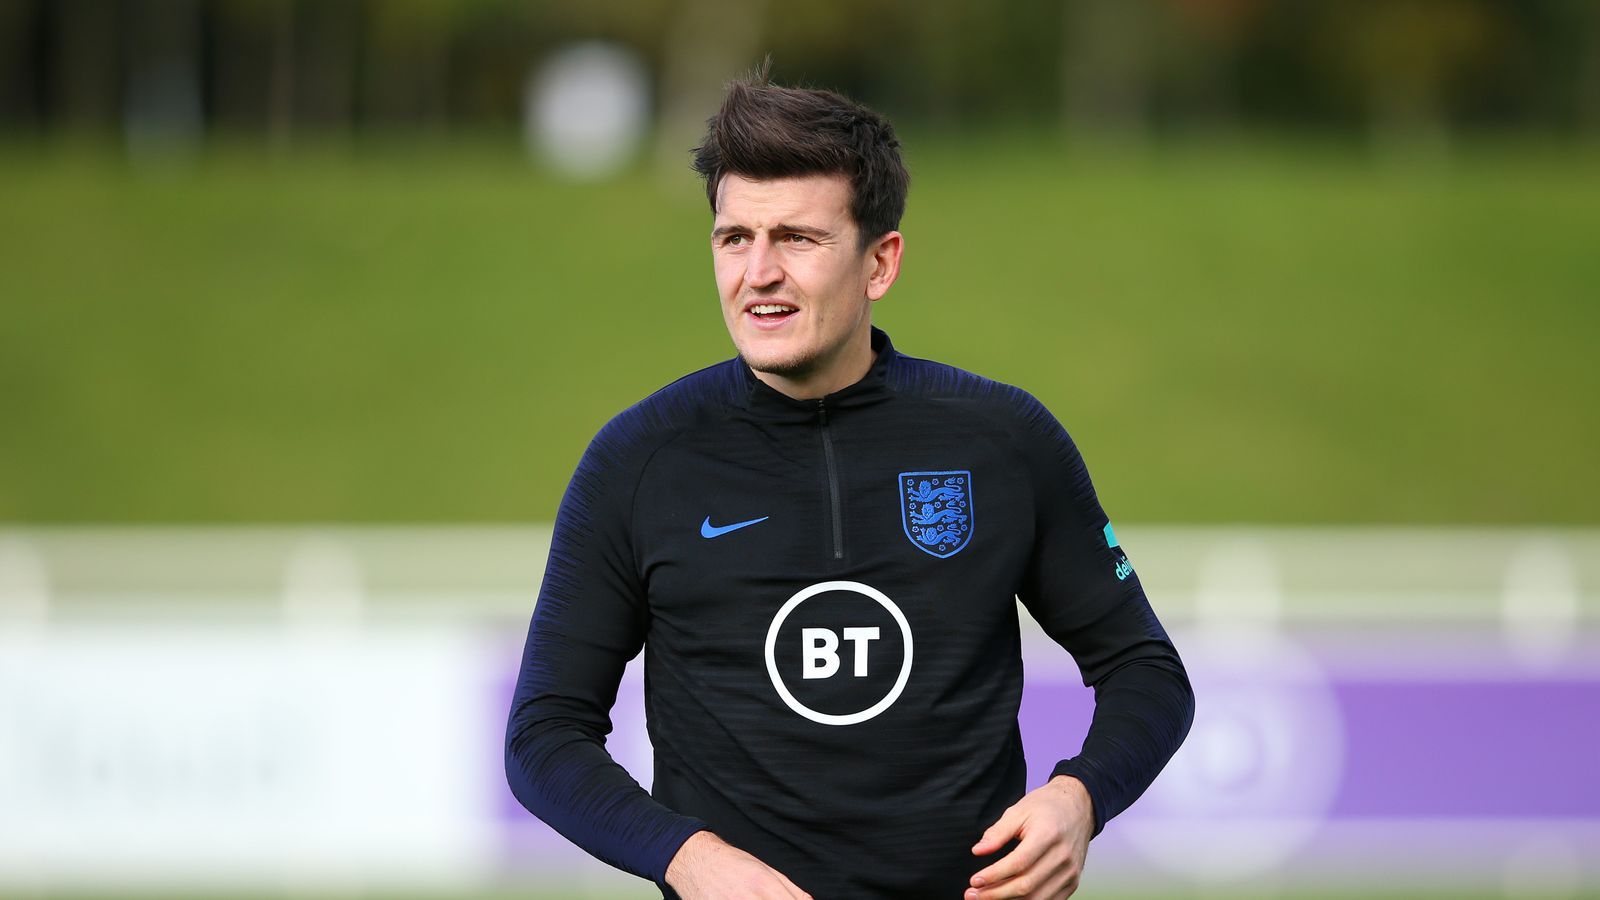 England include Harry Maguire in squad; Phil Foden, Mason Greenwood also called up | Football News